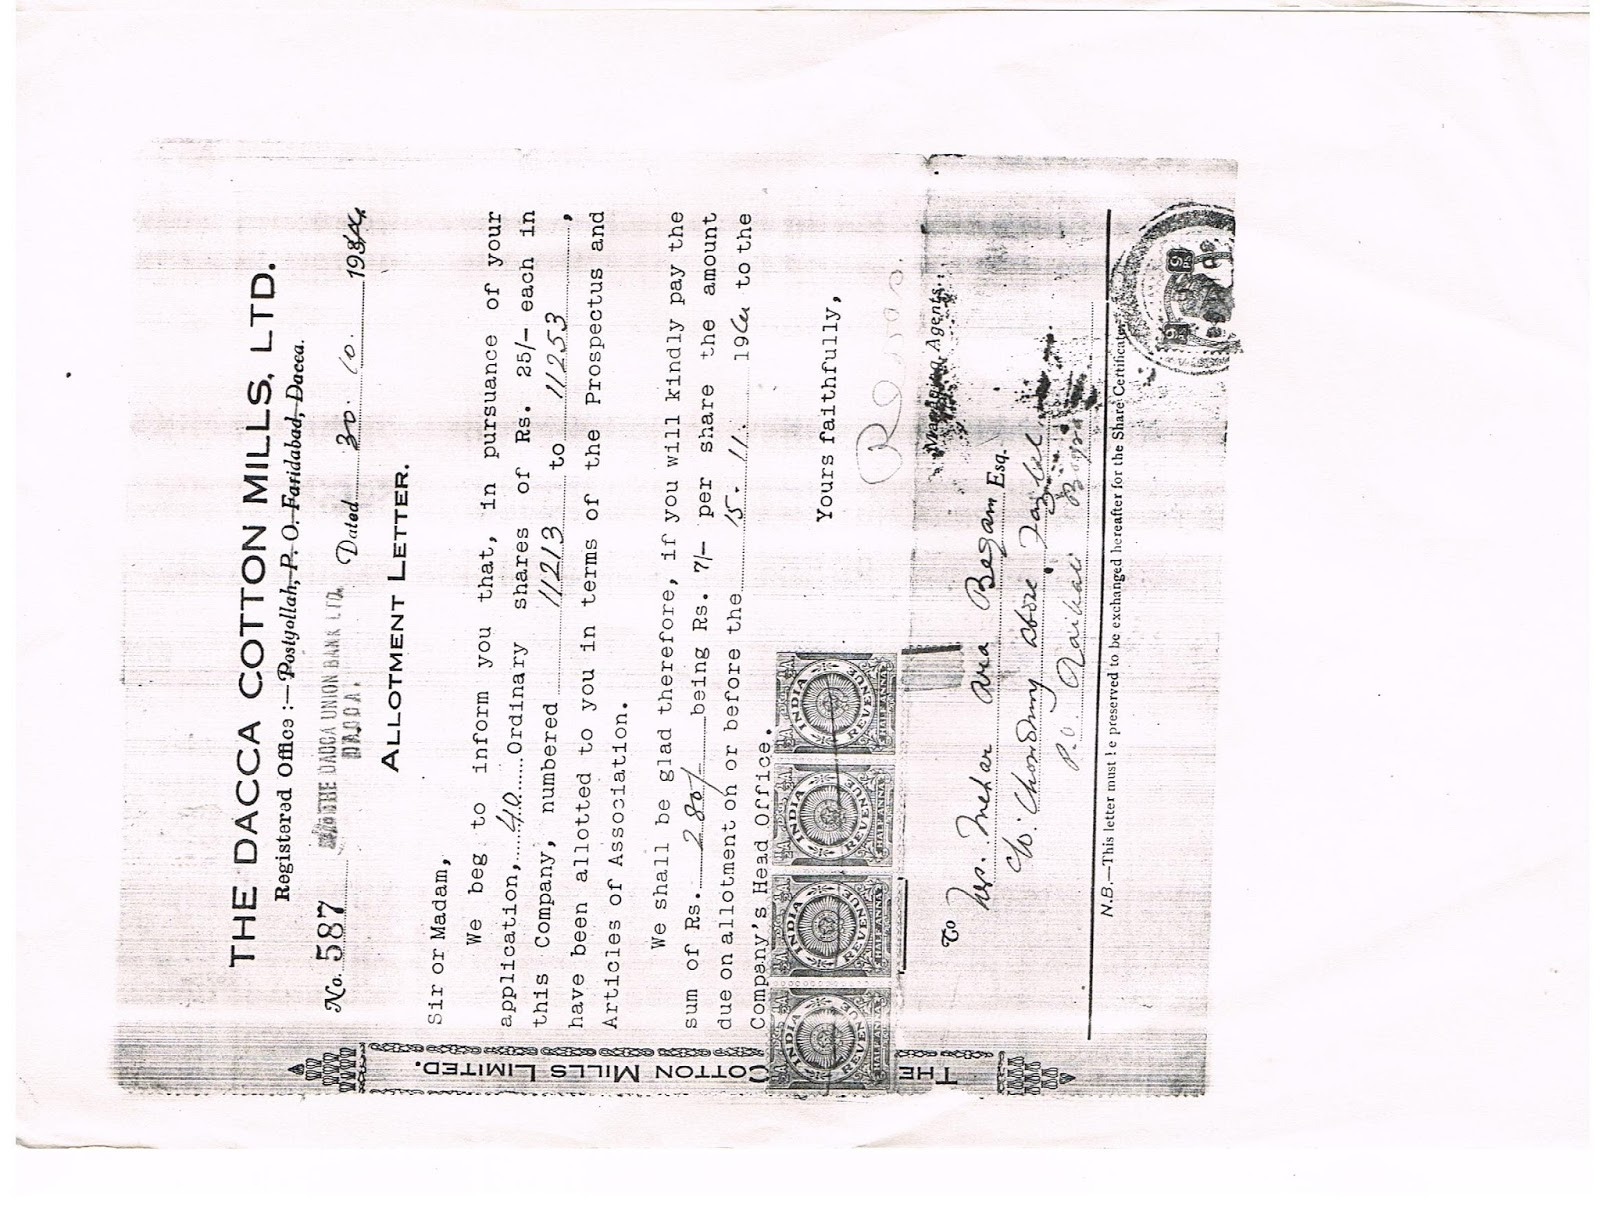 these shares belong to my ancestors some belong to my maternal grandmotheralive citizen india and the rest her relativesancestors i would like to get